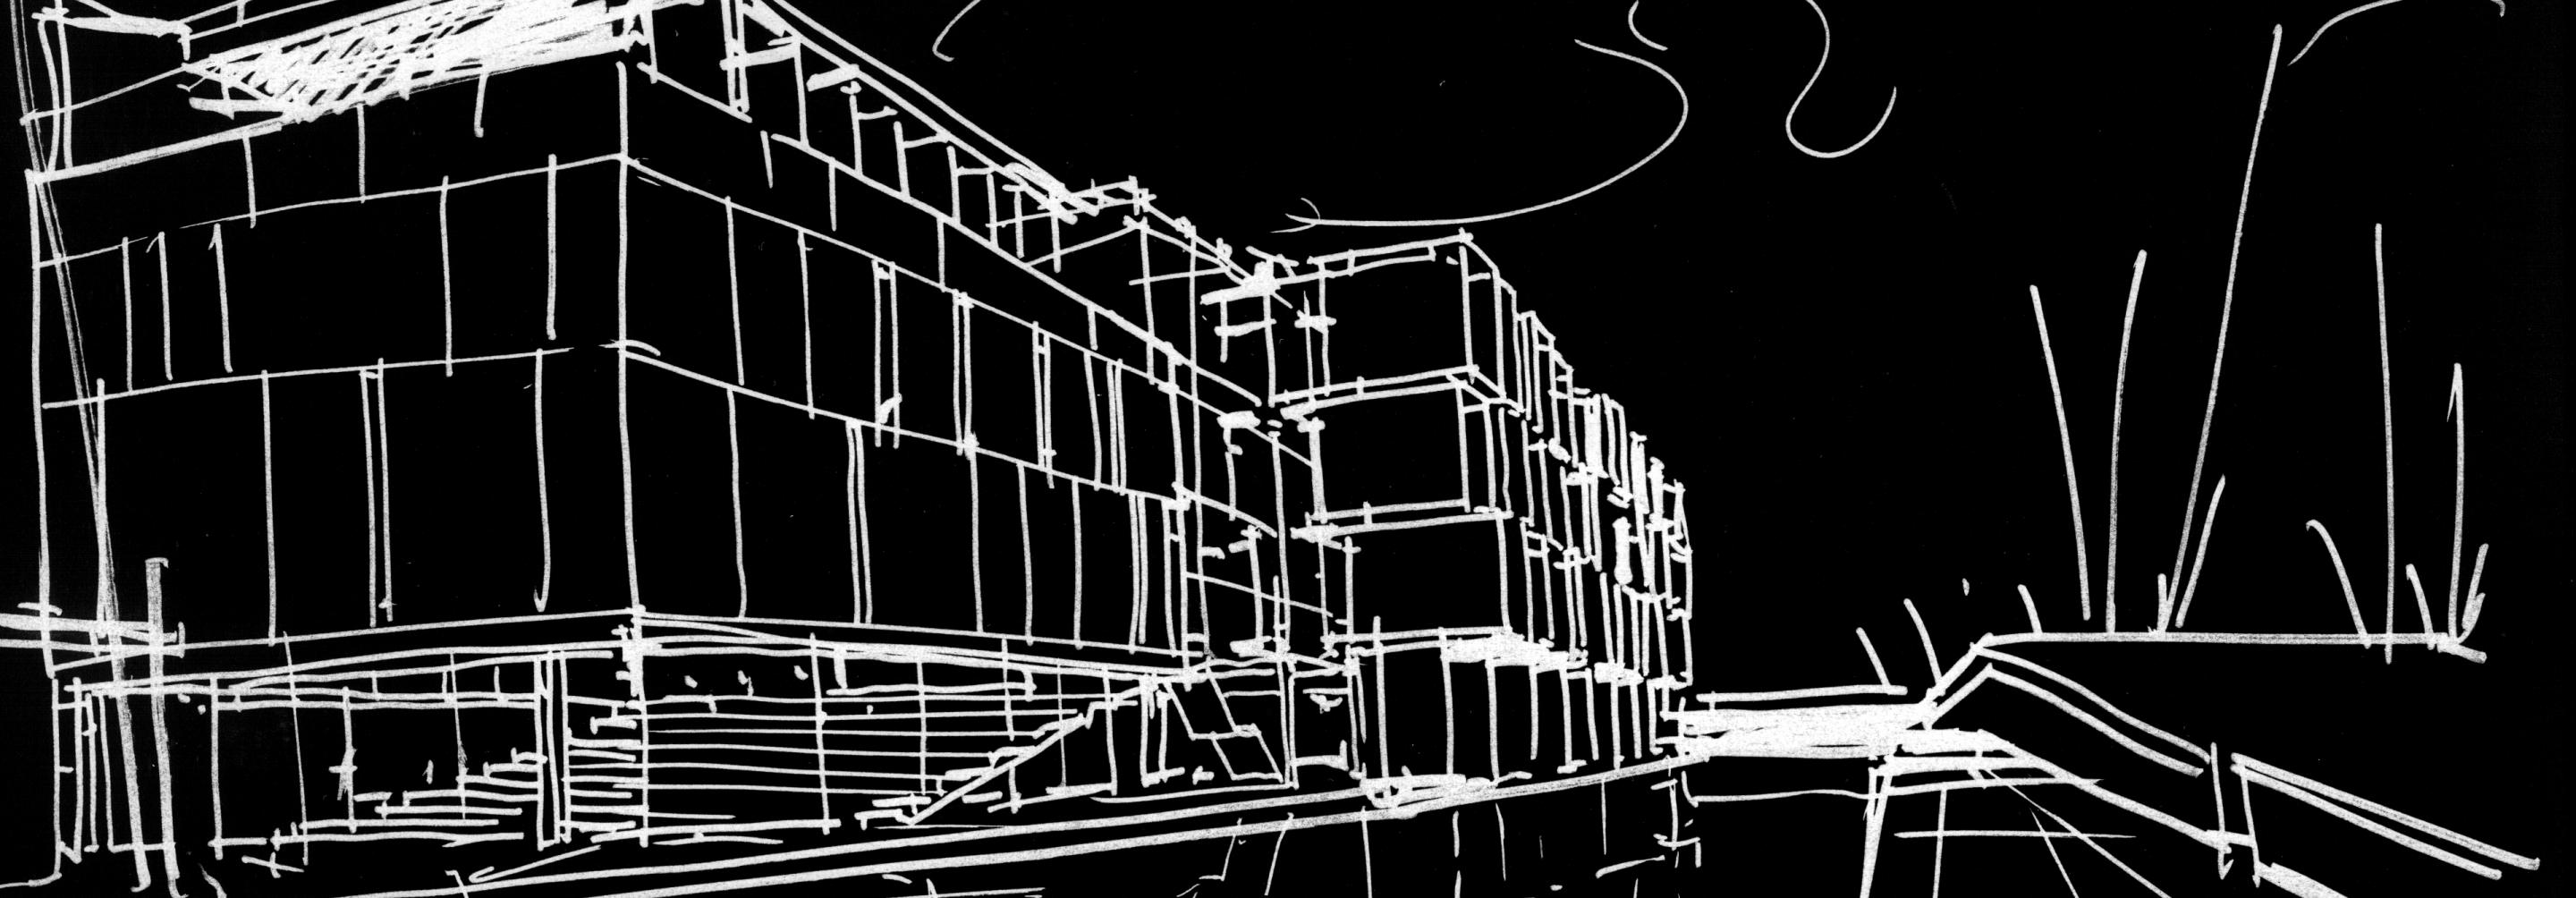 White sketch of the outside of a building on a black background